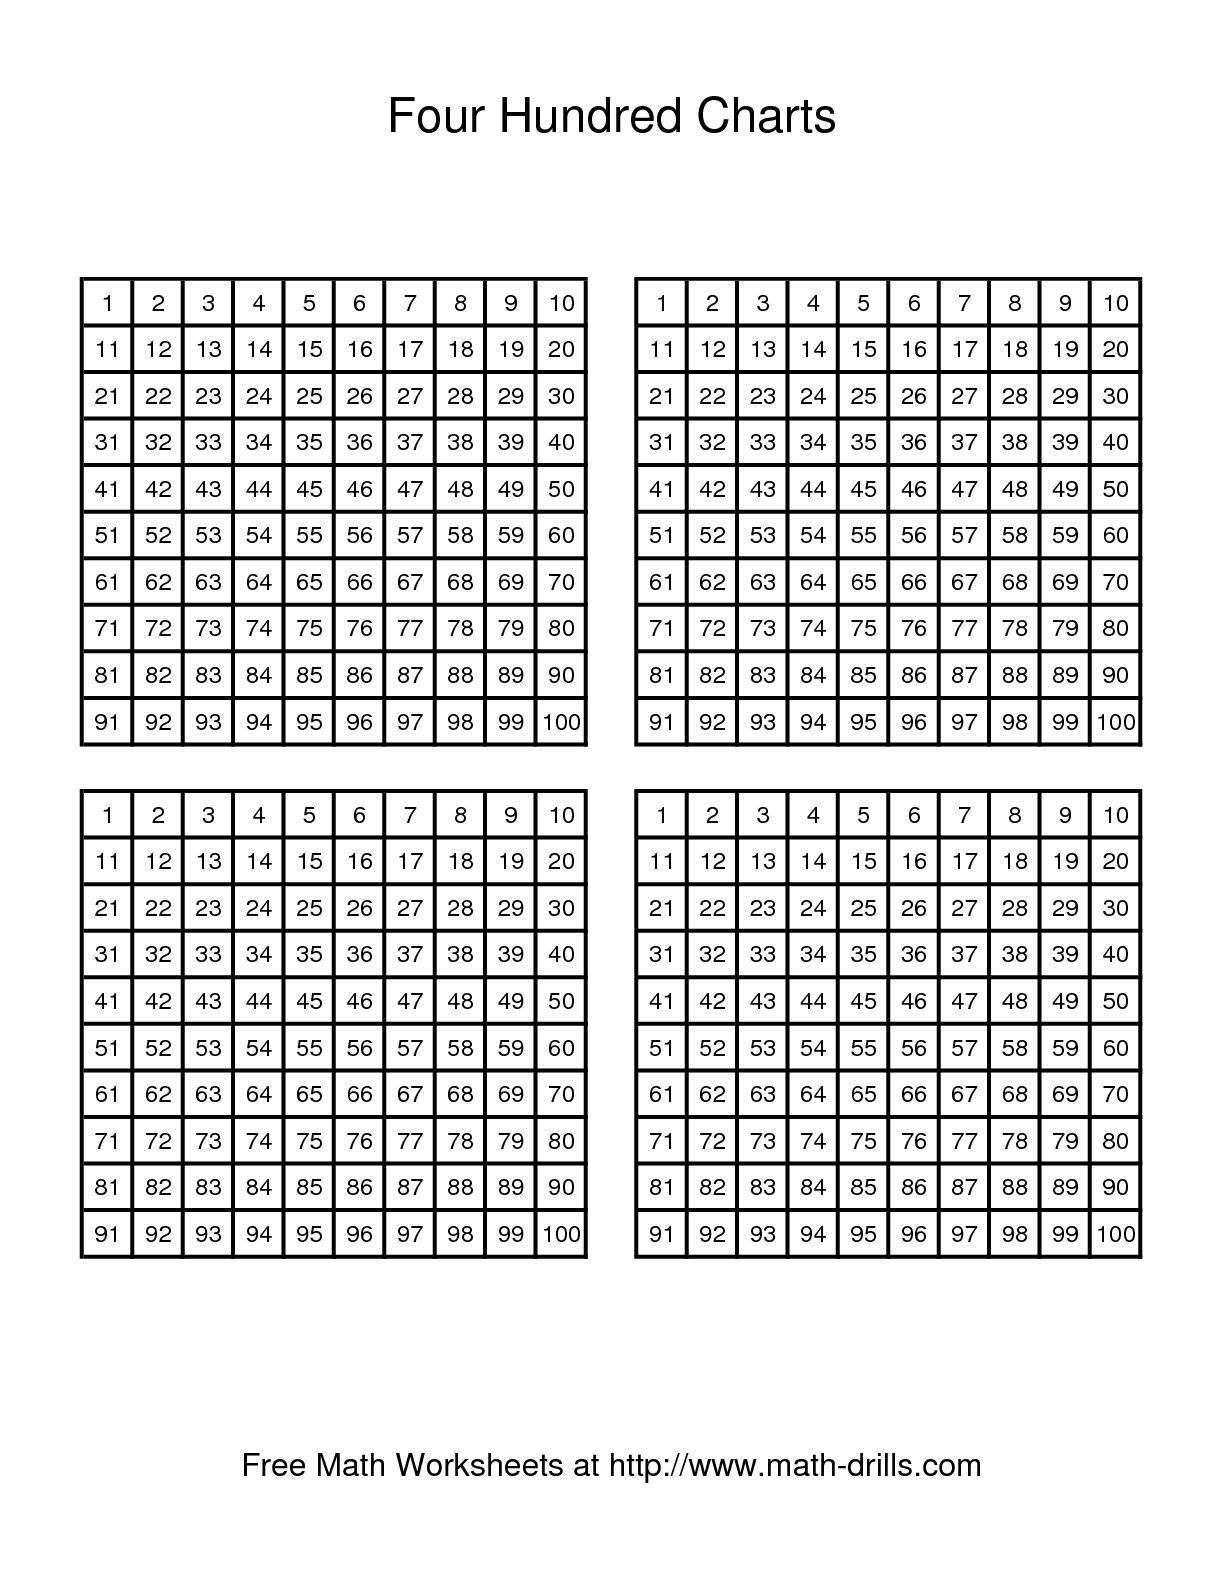 The Four Hundred Charts Math Worksheet From The Number